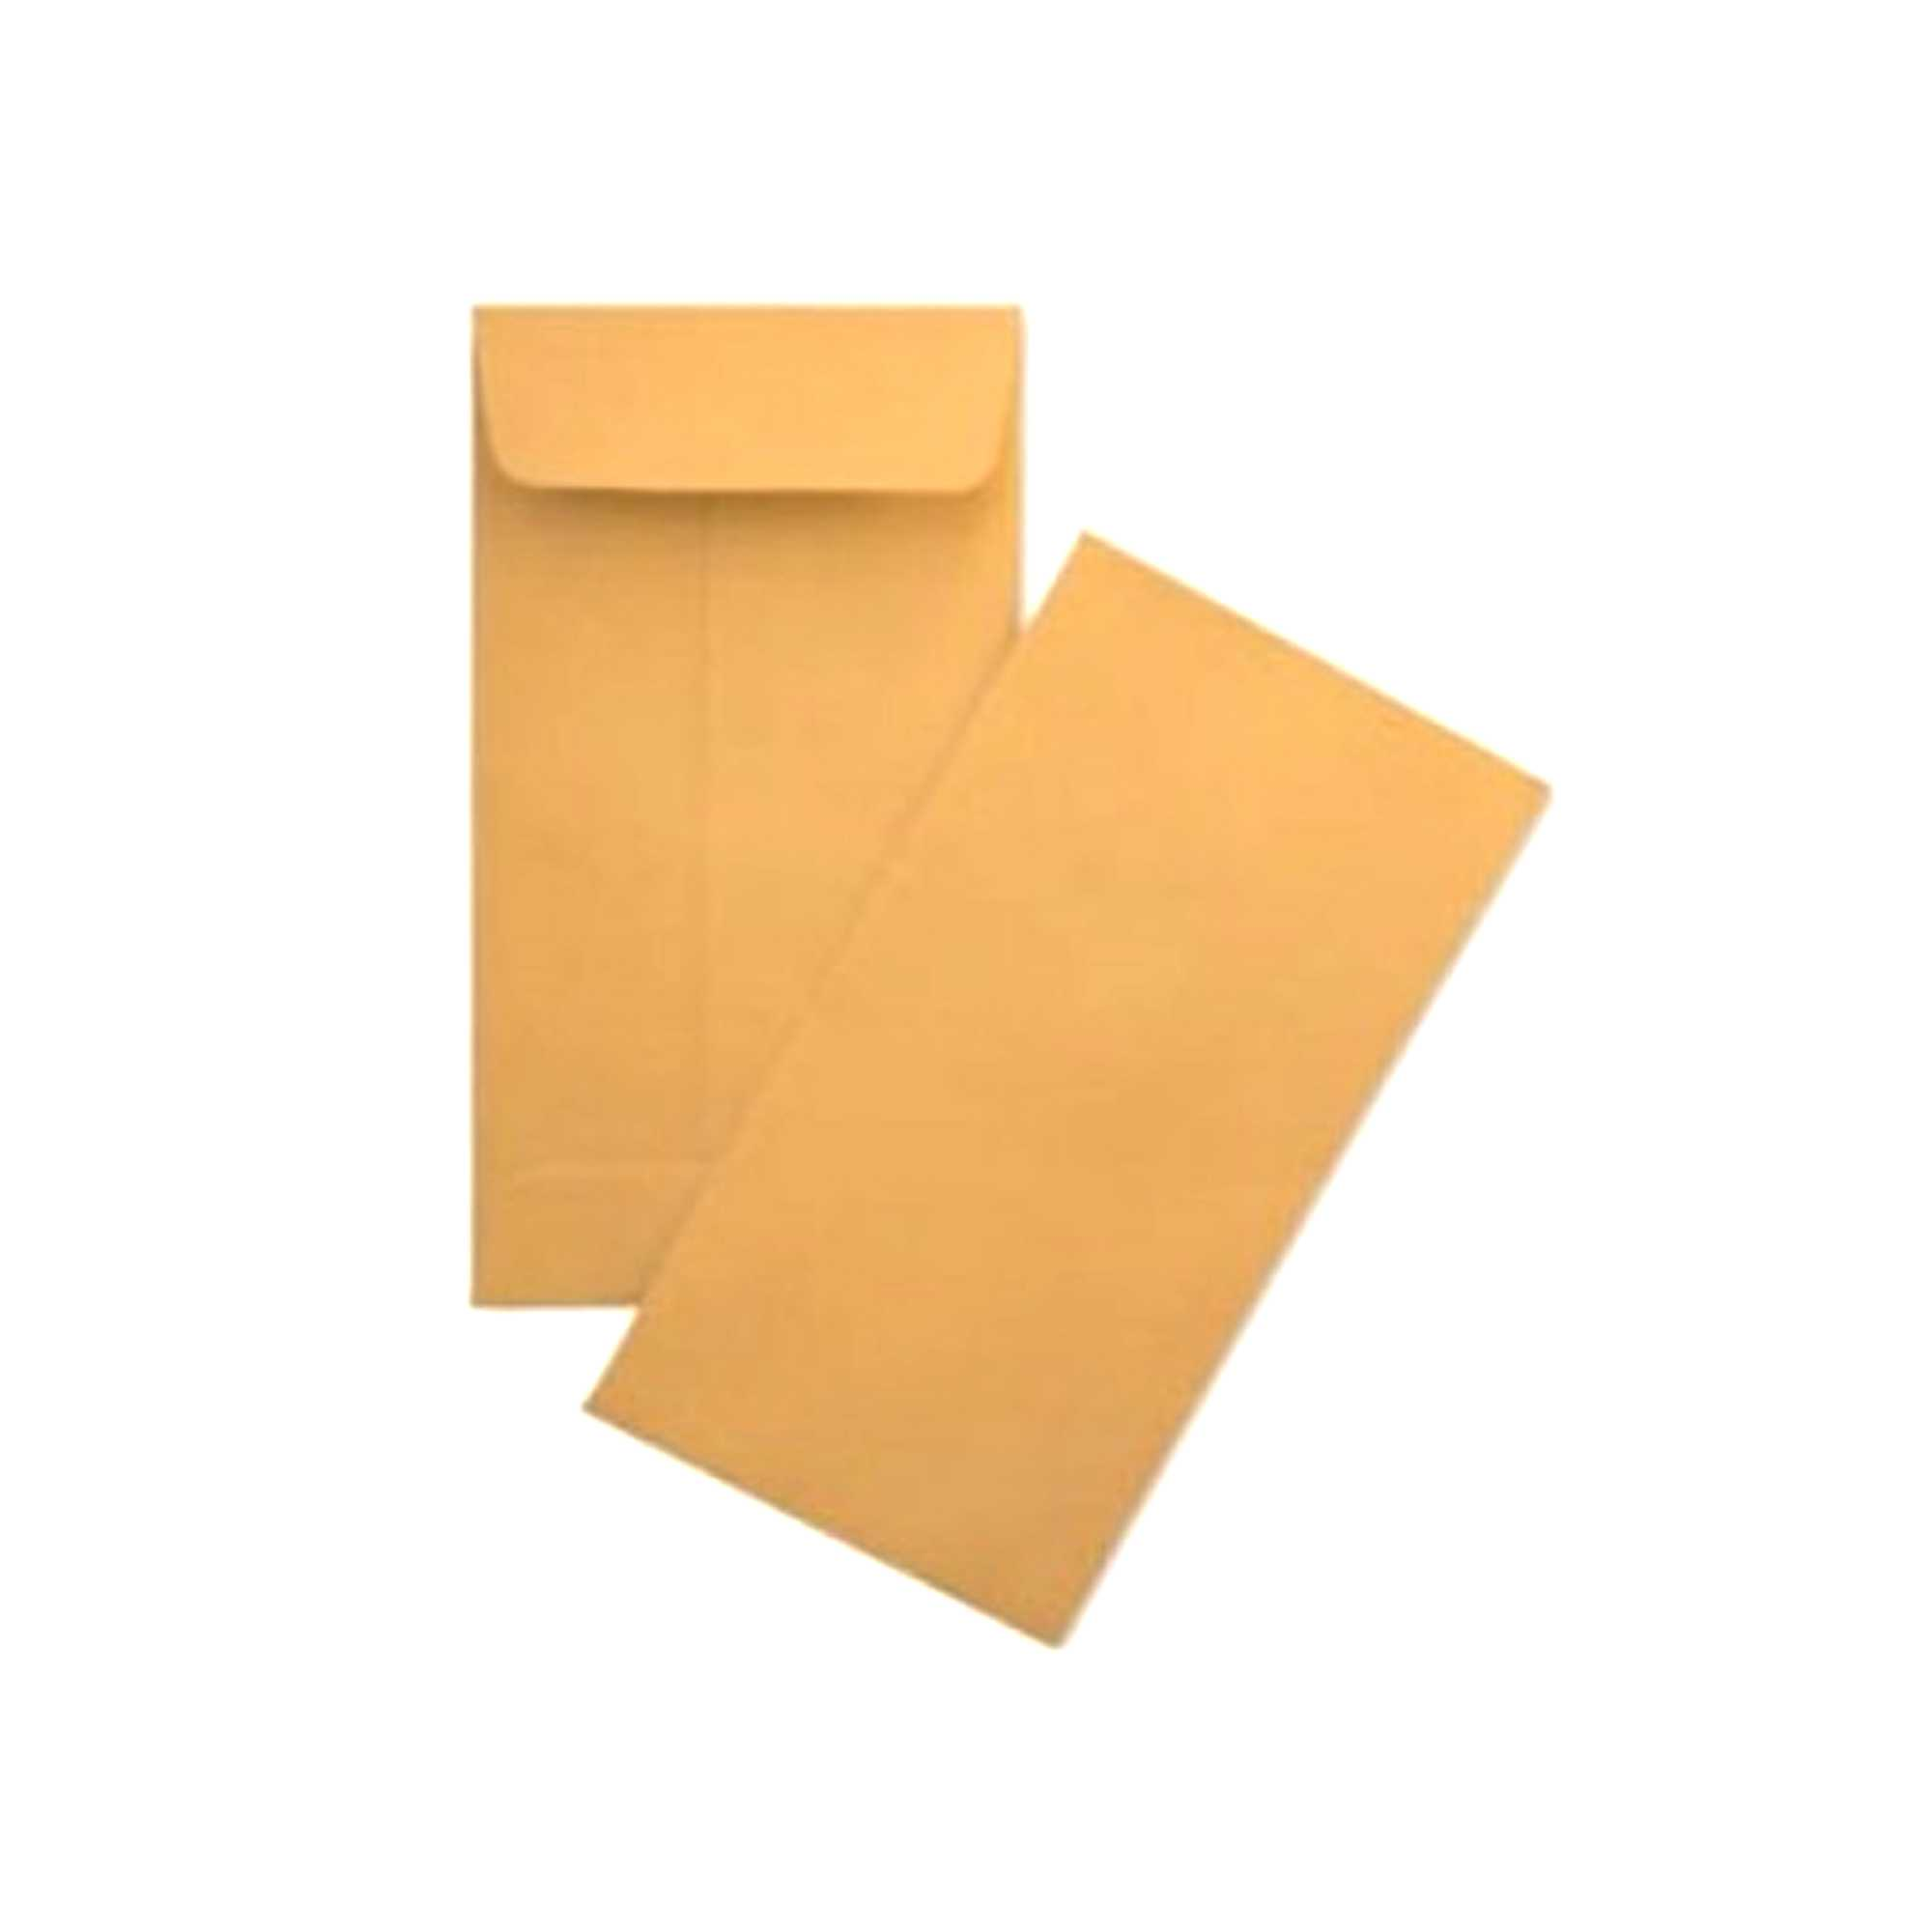 Brown Letter Envelope 24 pcs